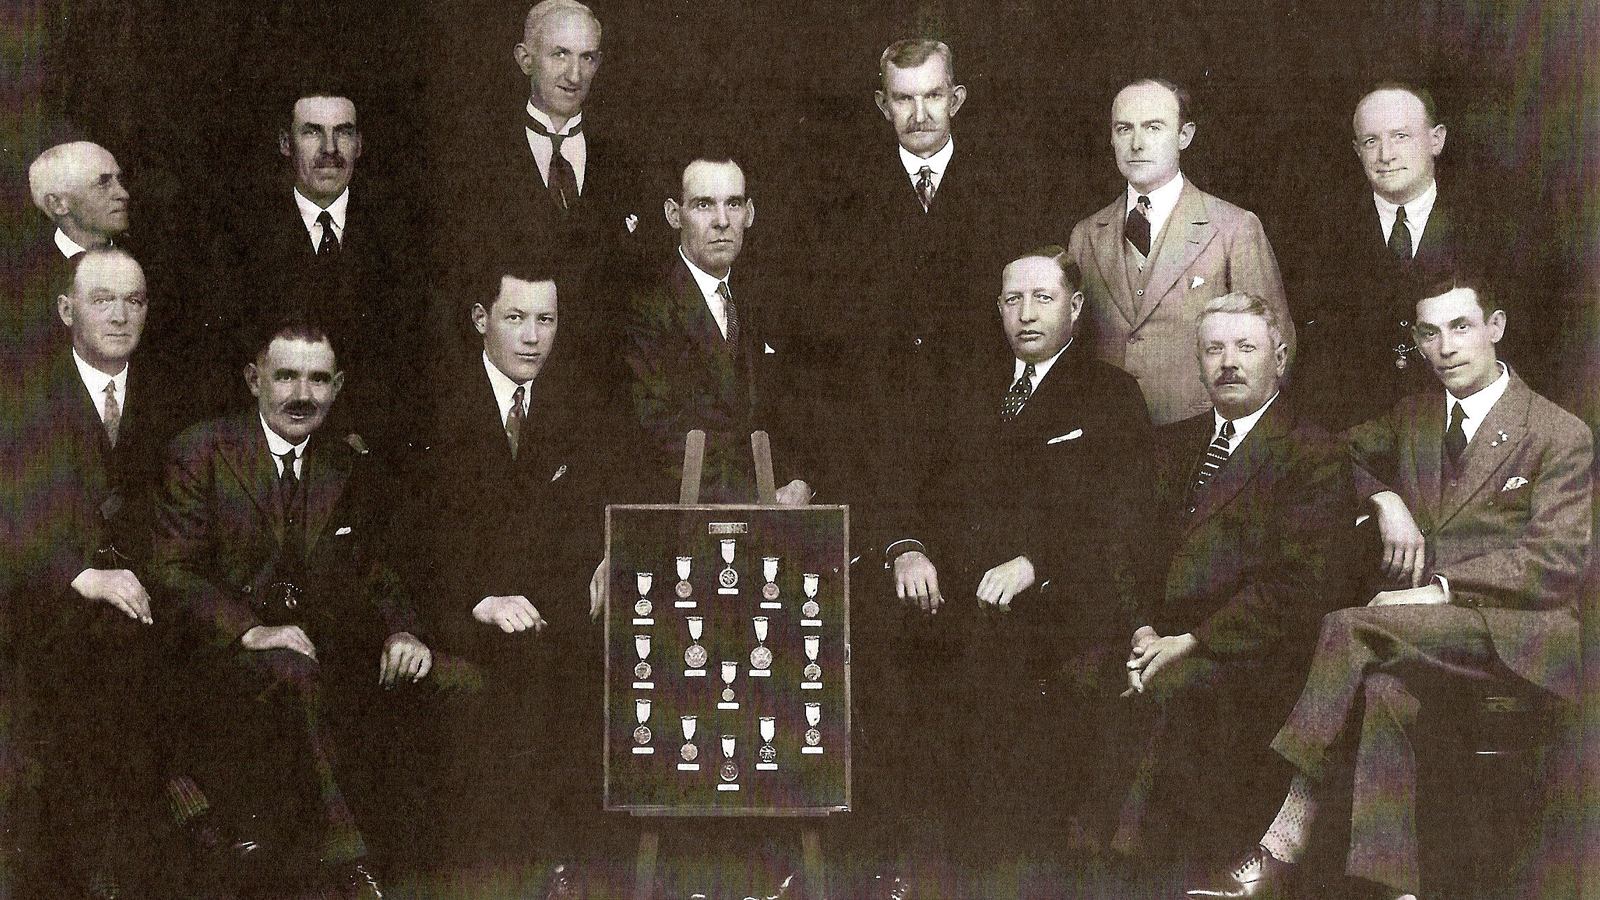 Macdonald Smith, seated to the right of the championship medals board, presenting the bequeathed collection of his recently deceased brother Alex, to the club of their childhood, Carnoustie Golf Club.